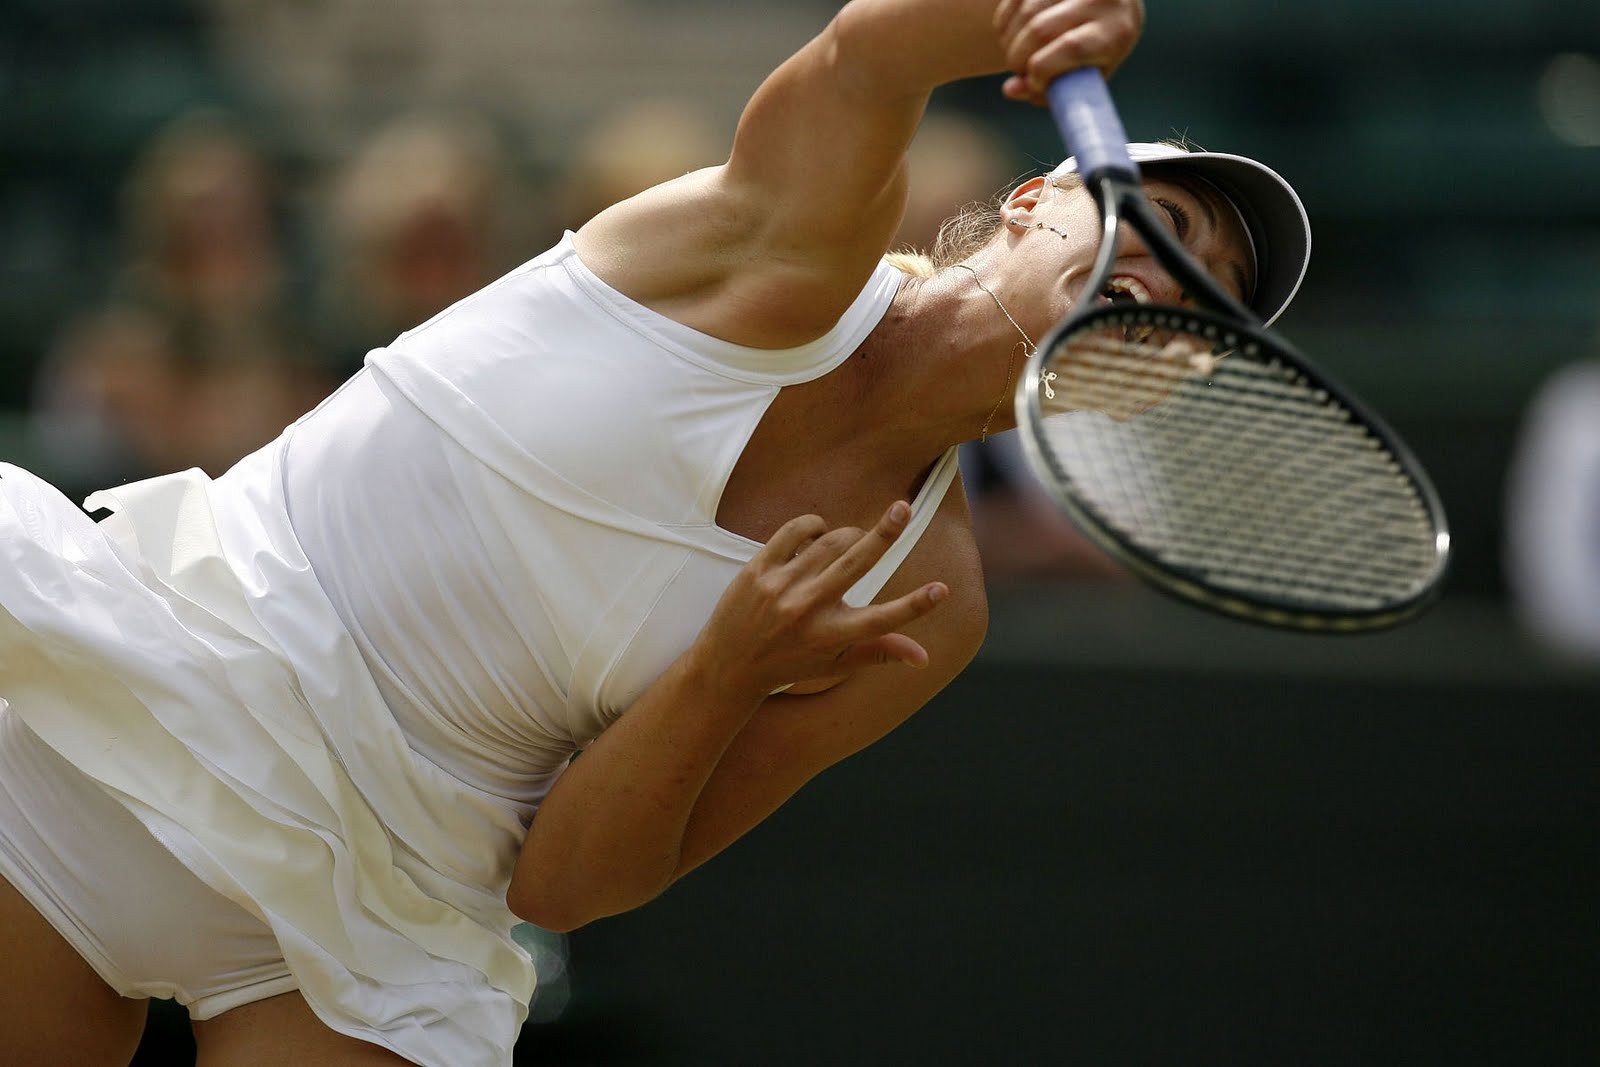 maria sharapova upskirt 32 ... adult dating online personals, order adult movie, nude russian bbs